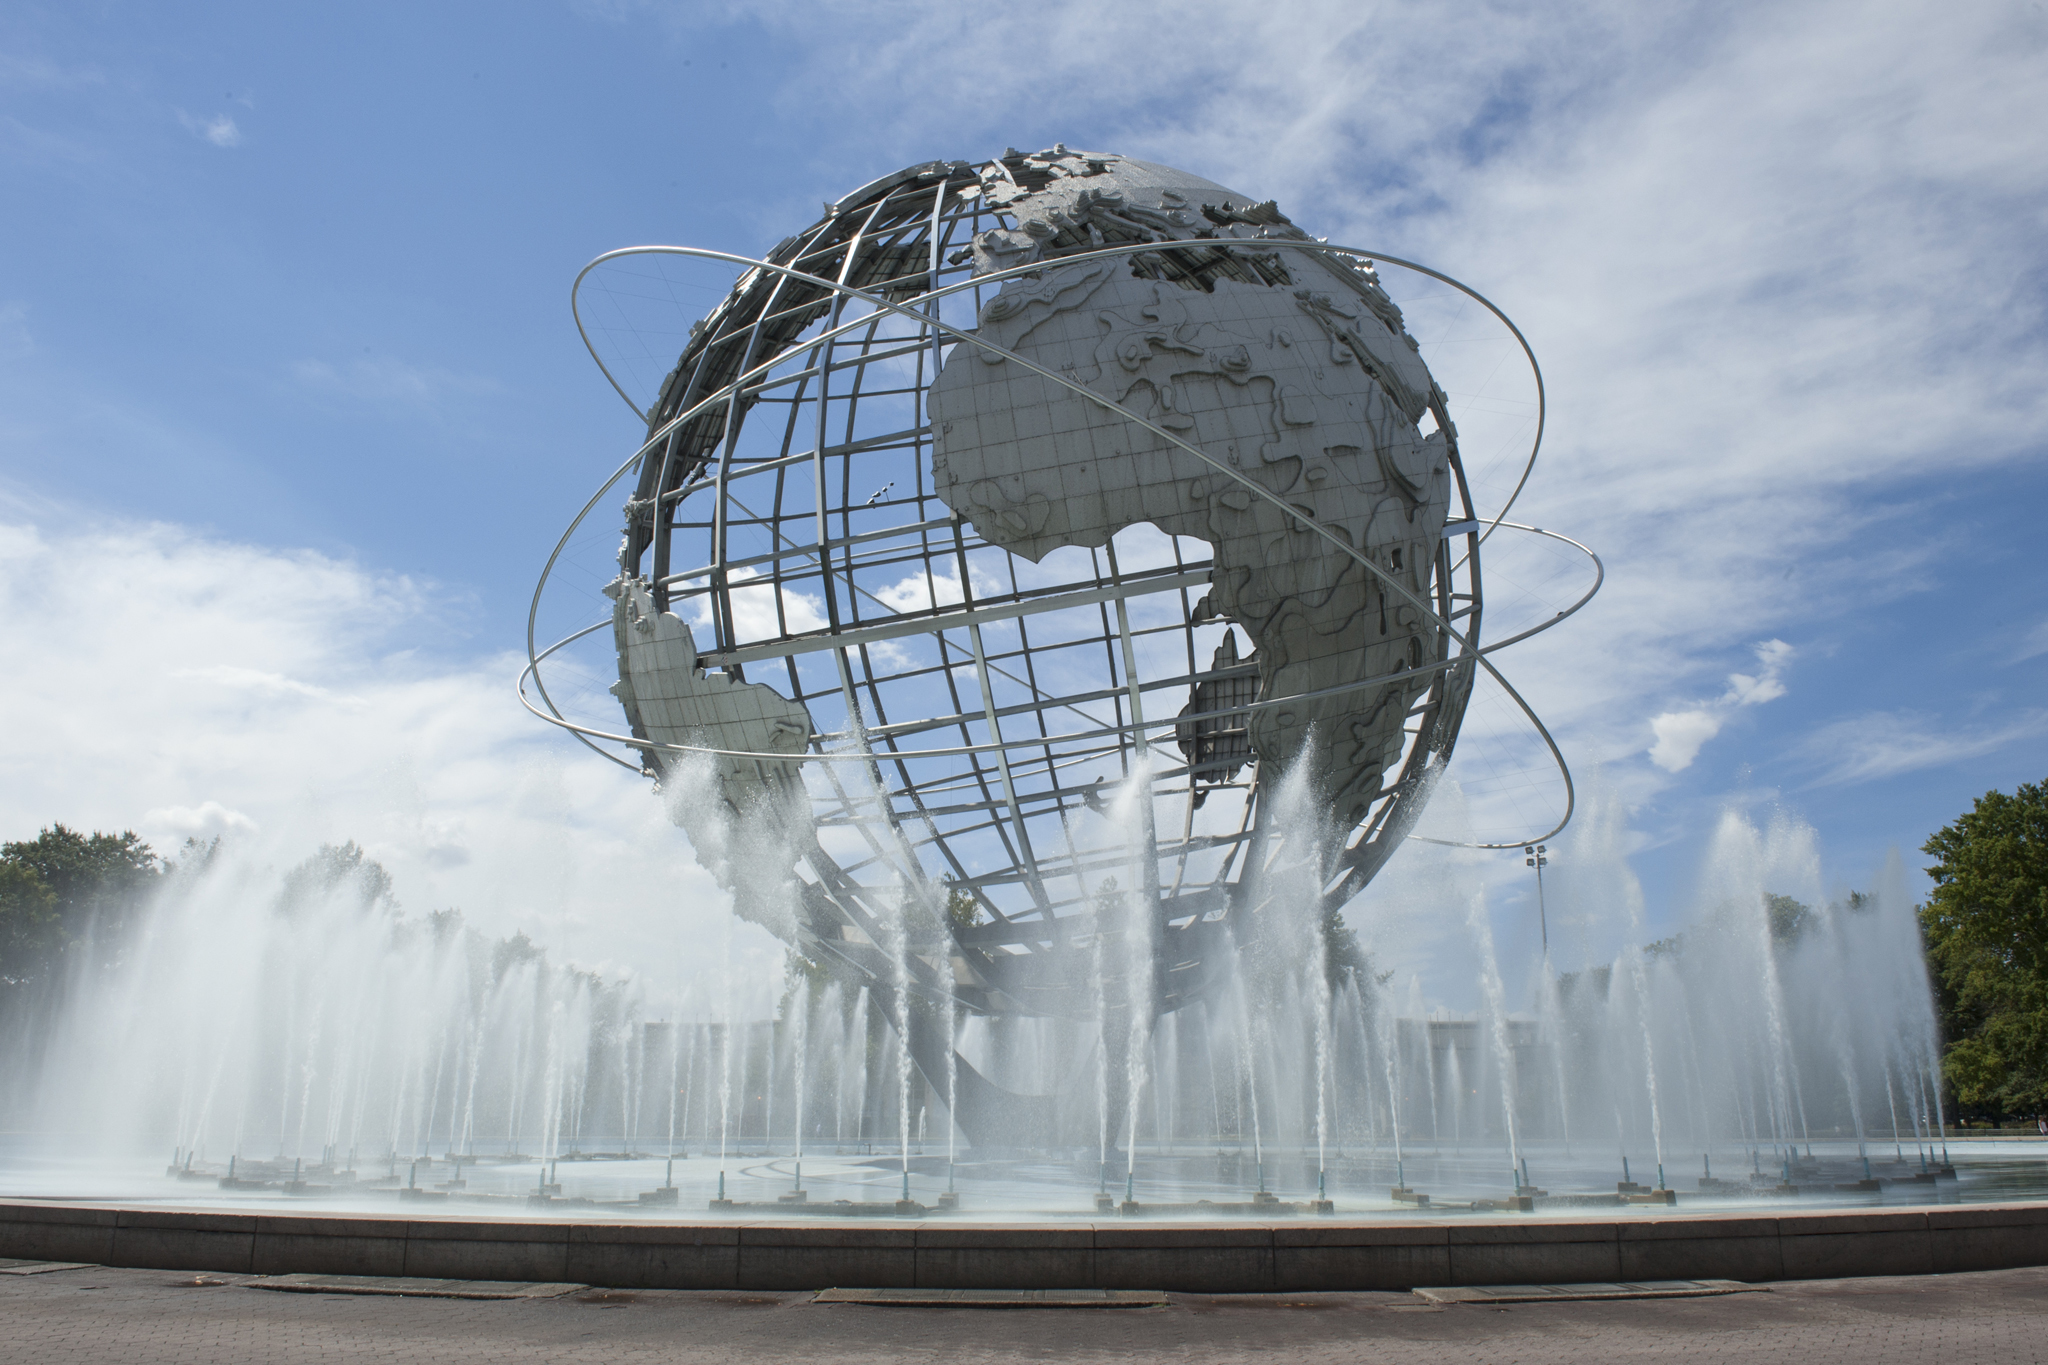 Coachella organizers look to Queens' former World's Fair site for new fest